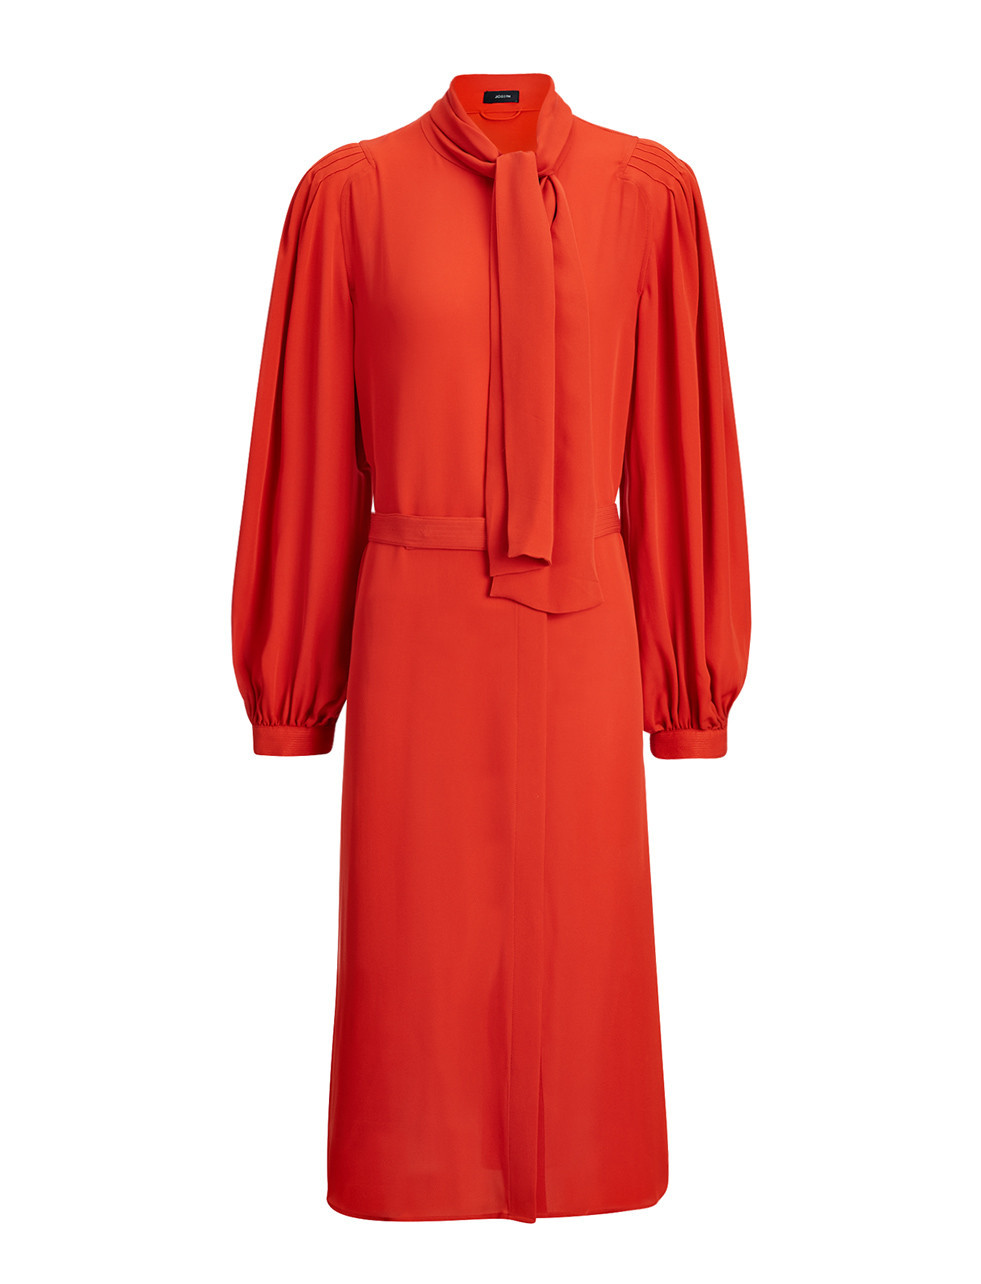 Double Georgette Billy Dress In Persimmon - style: shift; pattern: plain; neckline: pussy bow; predominant colour: bright orange; occasions: evening; length: on the knee; fit: body skimming; fibres: silk - 100%; sleeve length: long sleeve; sleeve style: standard; texture group: crepes; pattern type: fabric; season: s/s 2016